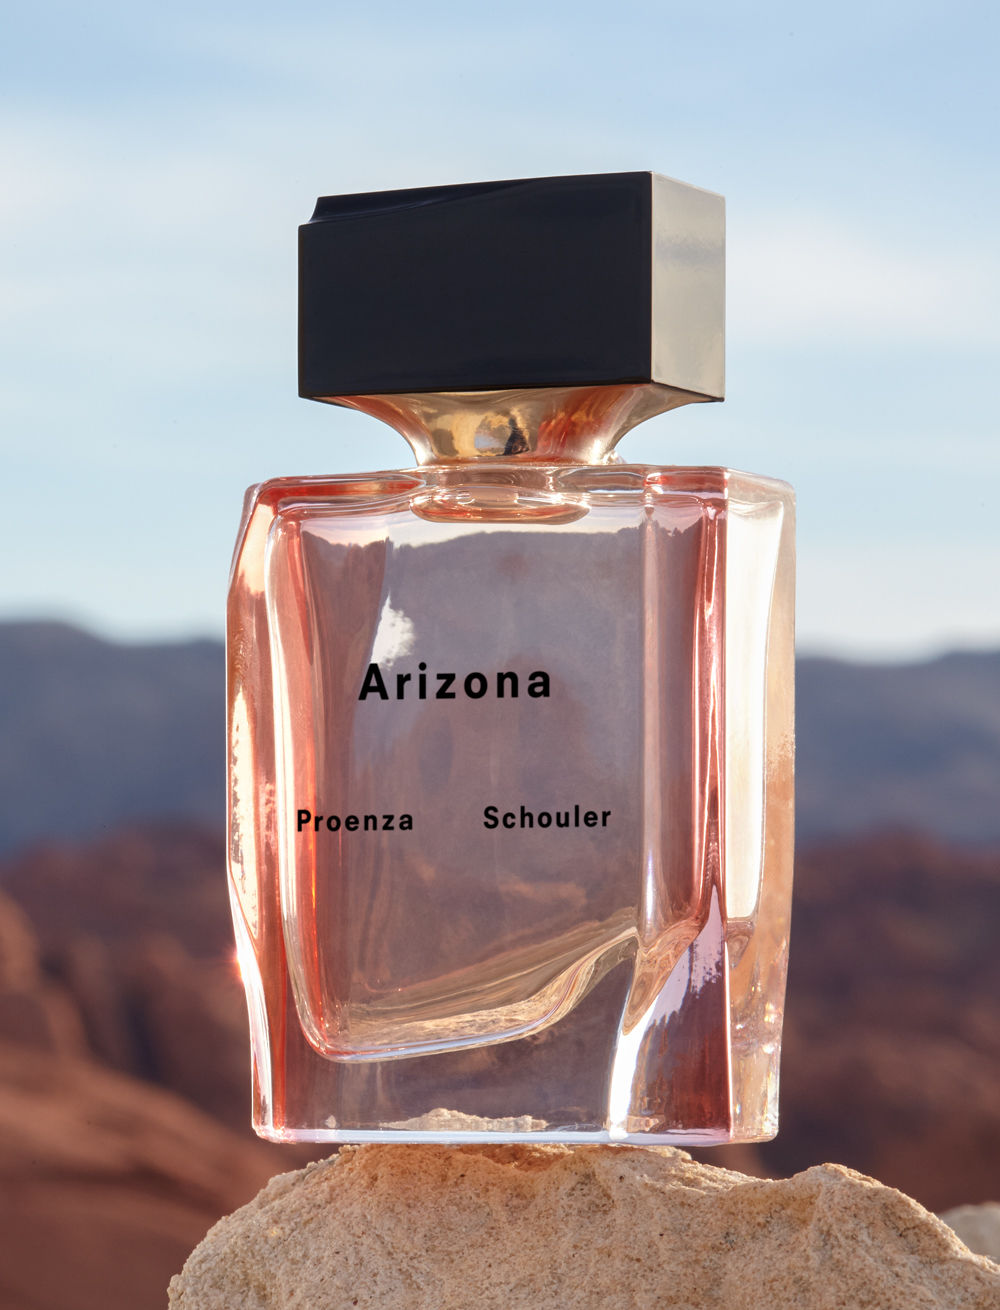 proenza-schouler-fragrance-arizona-portrait.jpg